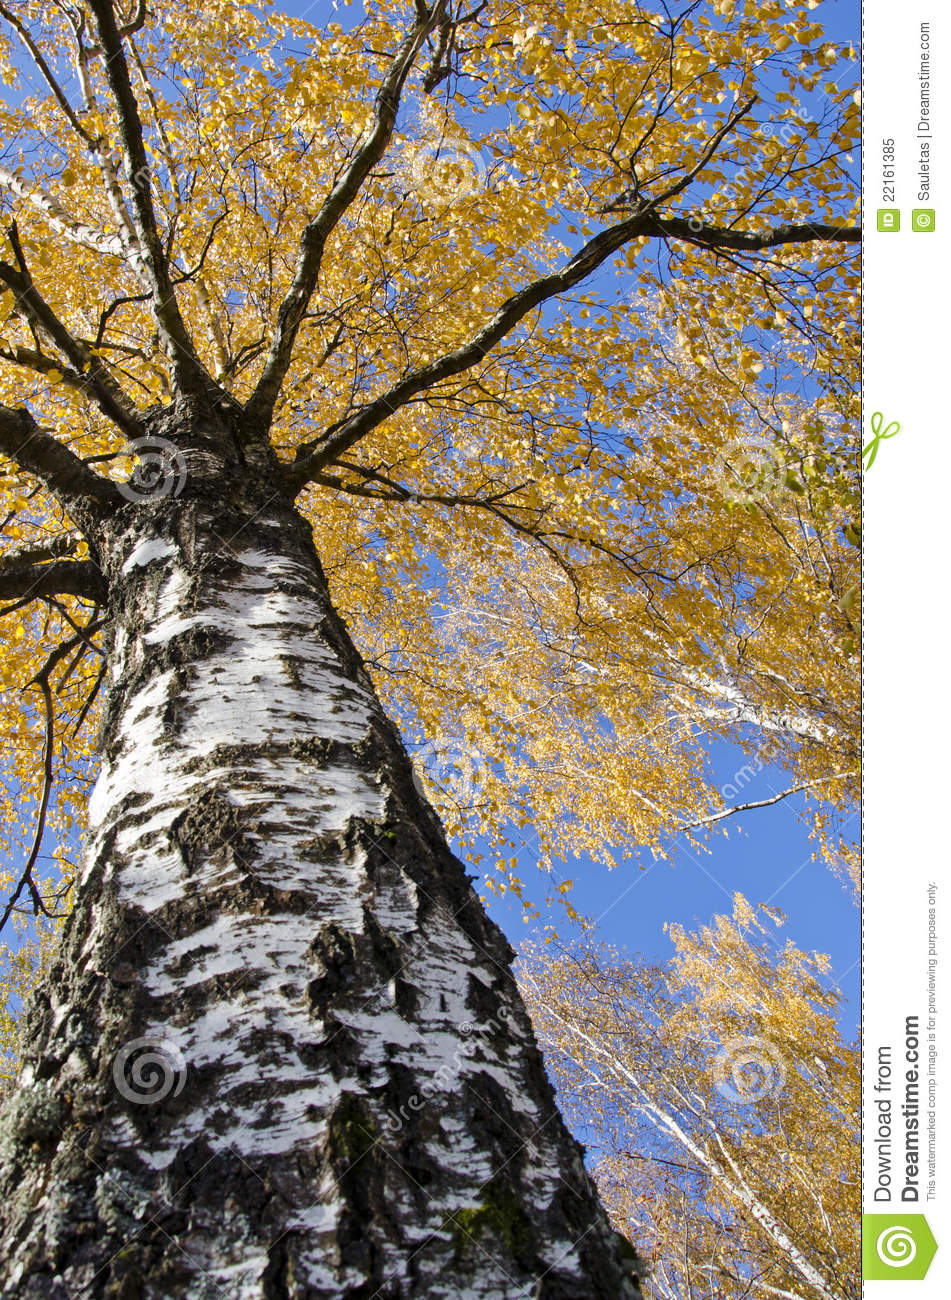 Download Autumn Birch Trunk Branches And Colored Leaves. Stock Image - Image of golden, landscape: 22161385